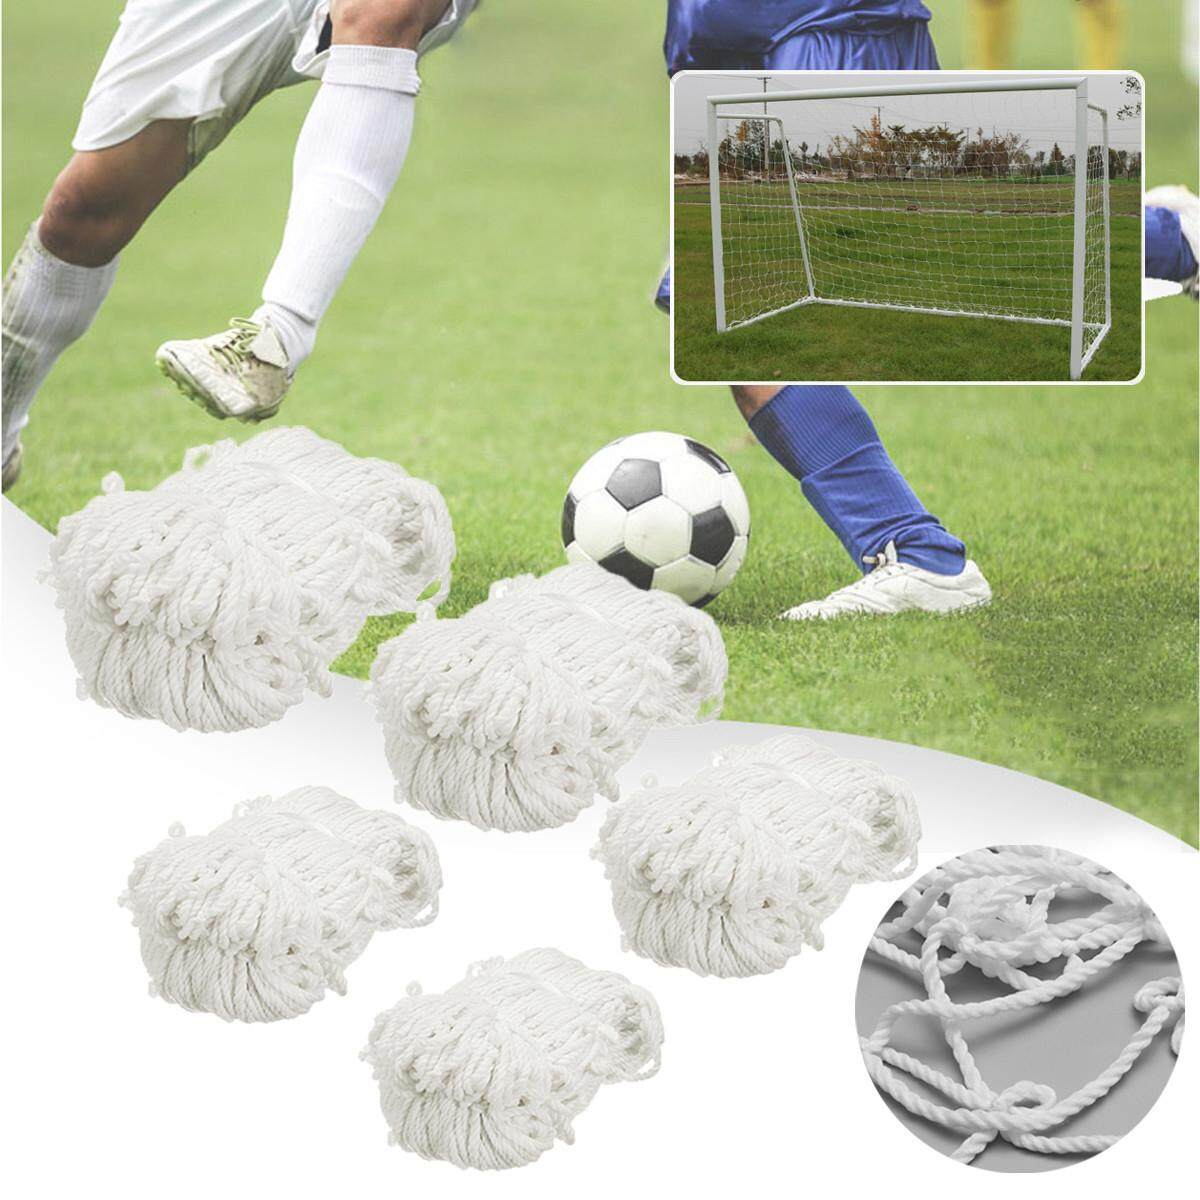 db0ba2c7f China. Football Soccer Goal Post Net Training Match Replace Outdoor Full  Size Adult Kid